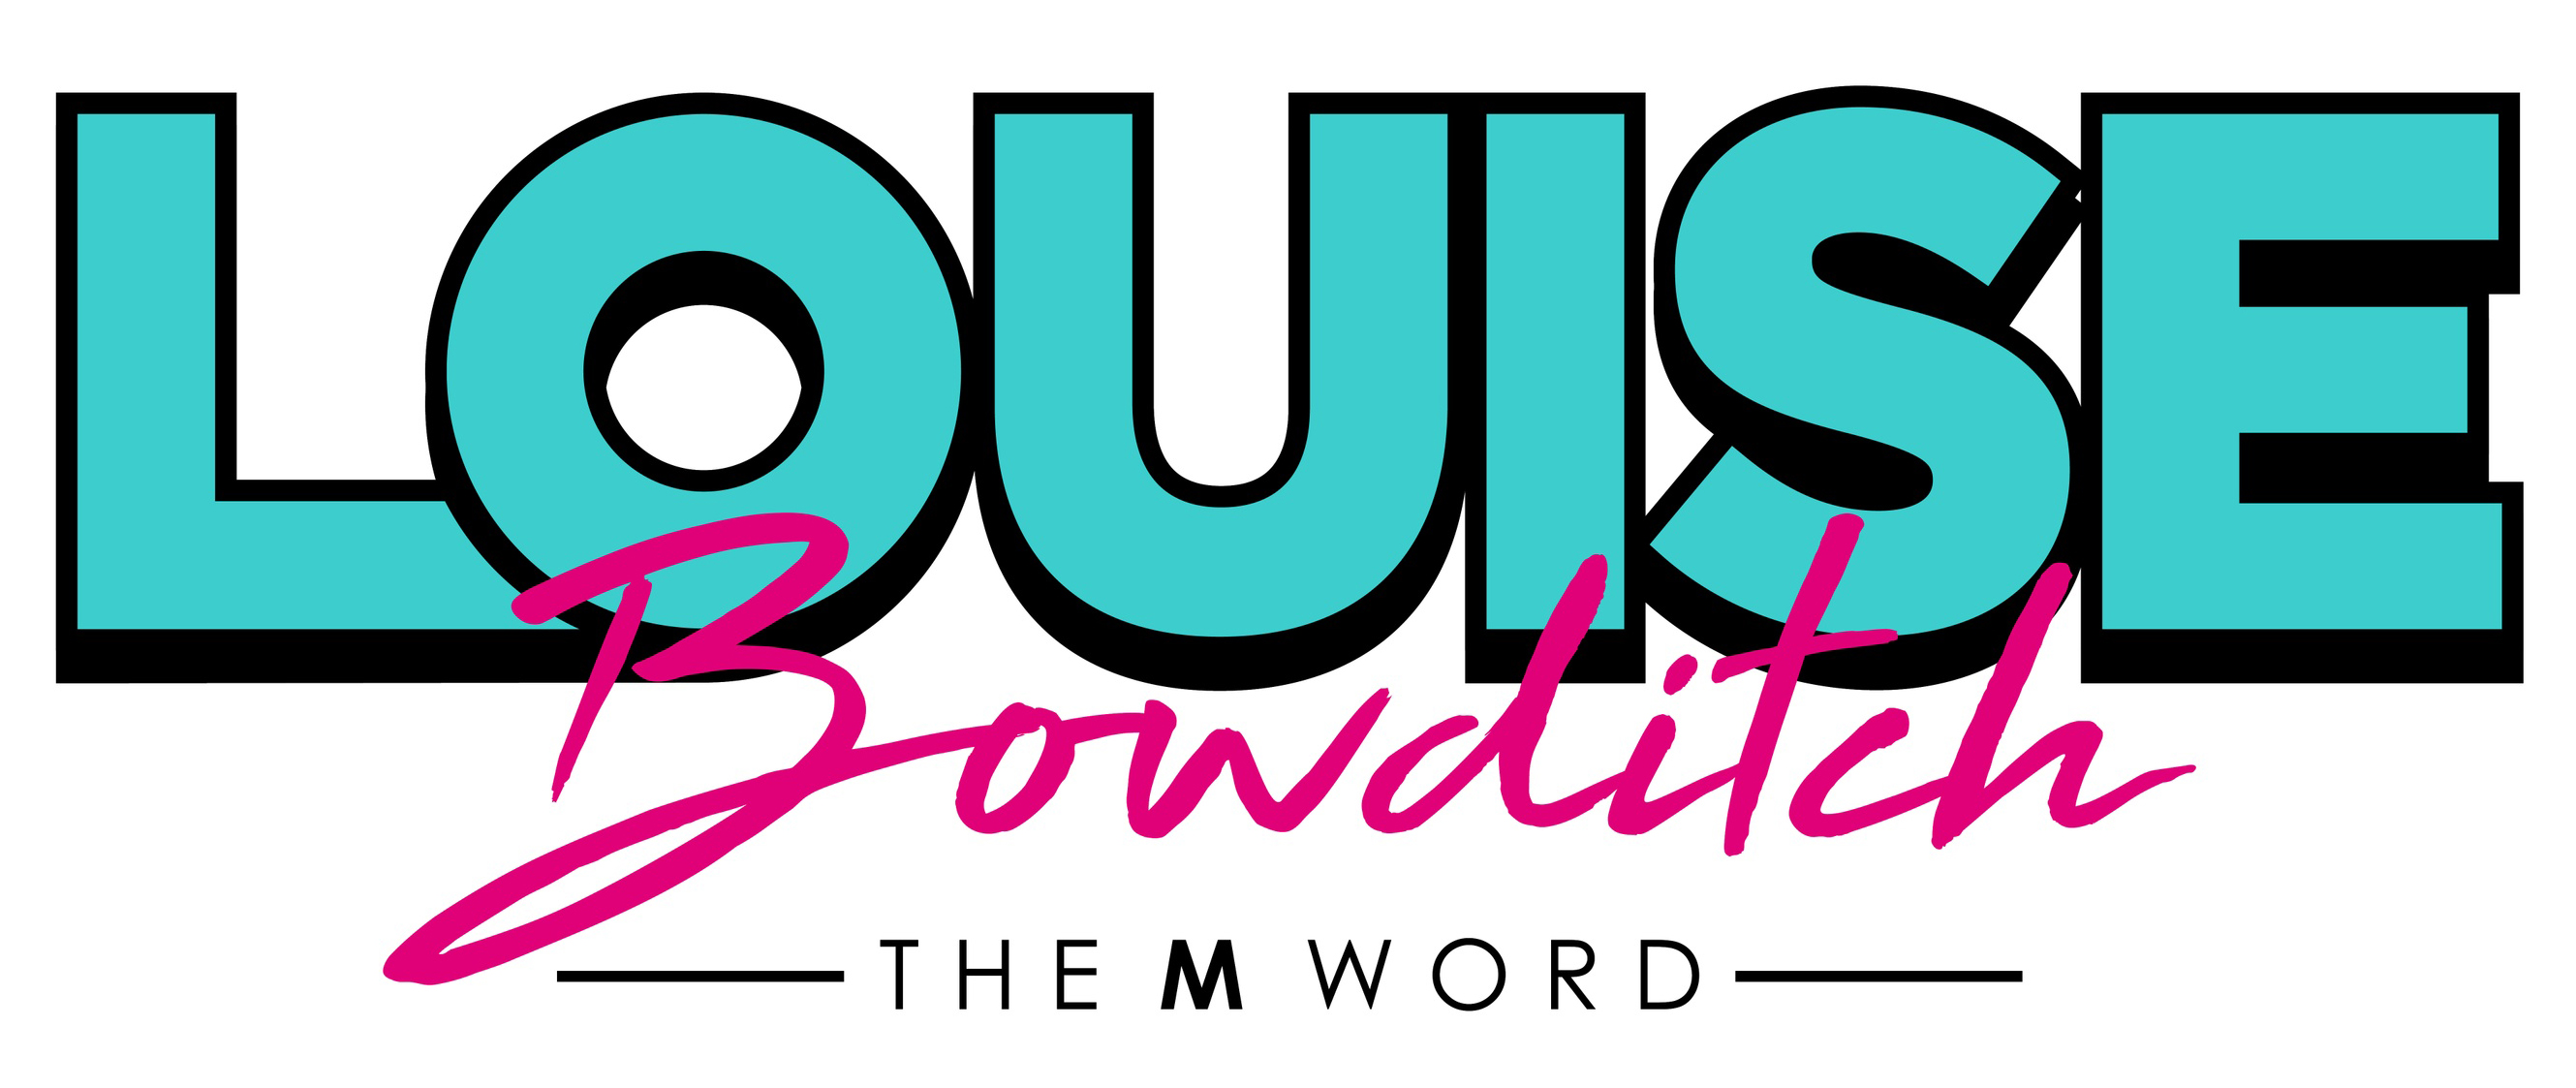 Louise Bowditch | The M Word